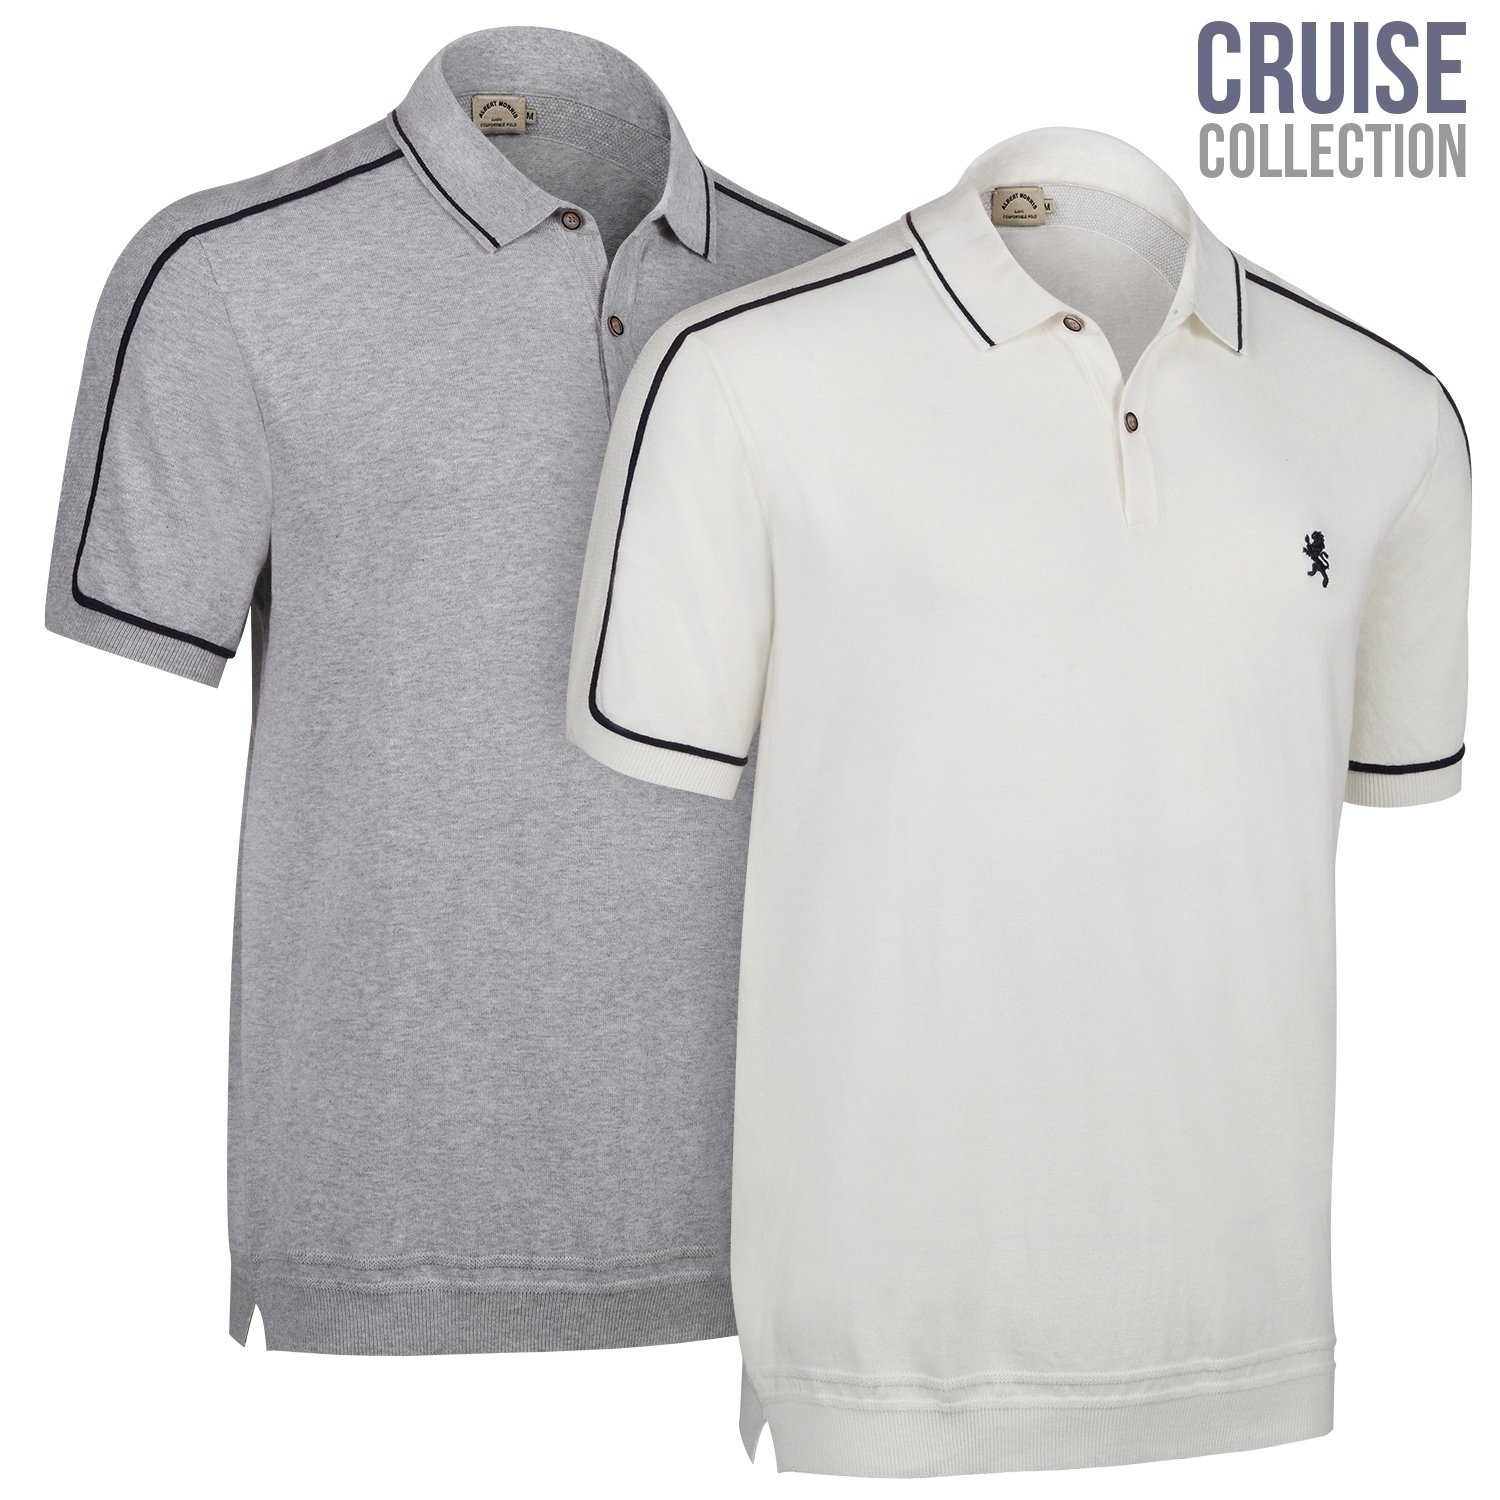 1e893c6c17d SUPERIOR FITTING – Albert Morris traditional polo shirts are sized  professionally for a perfect, comfortable fit. Great for going out, to the  office, ...